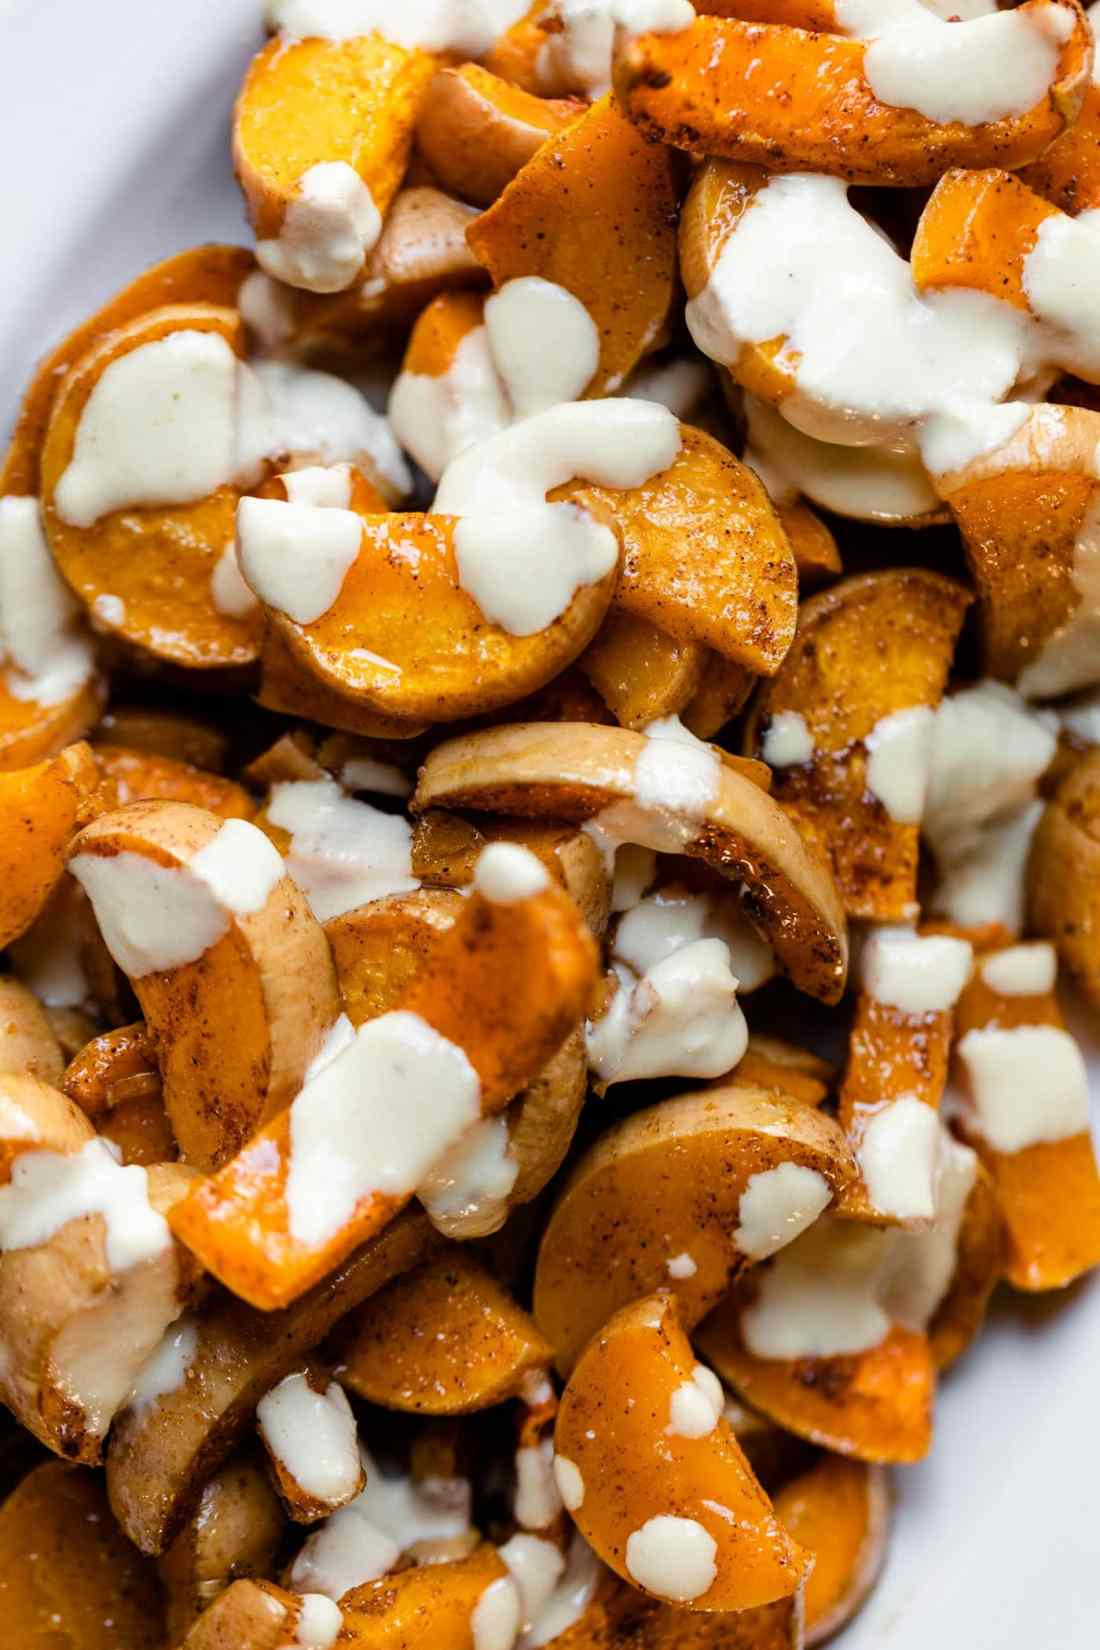 Spiced butternut squash drizzled with white tahini sauce sitting on white platter